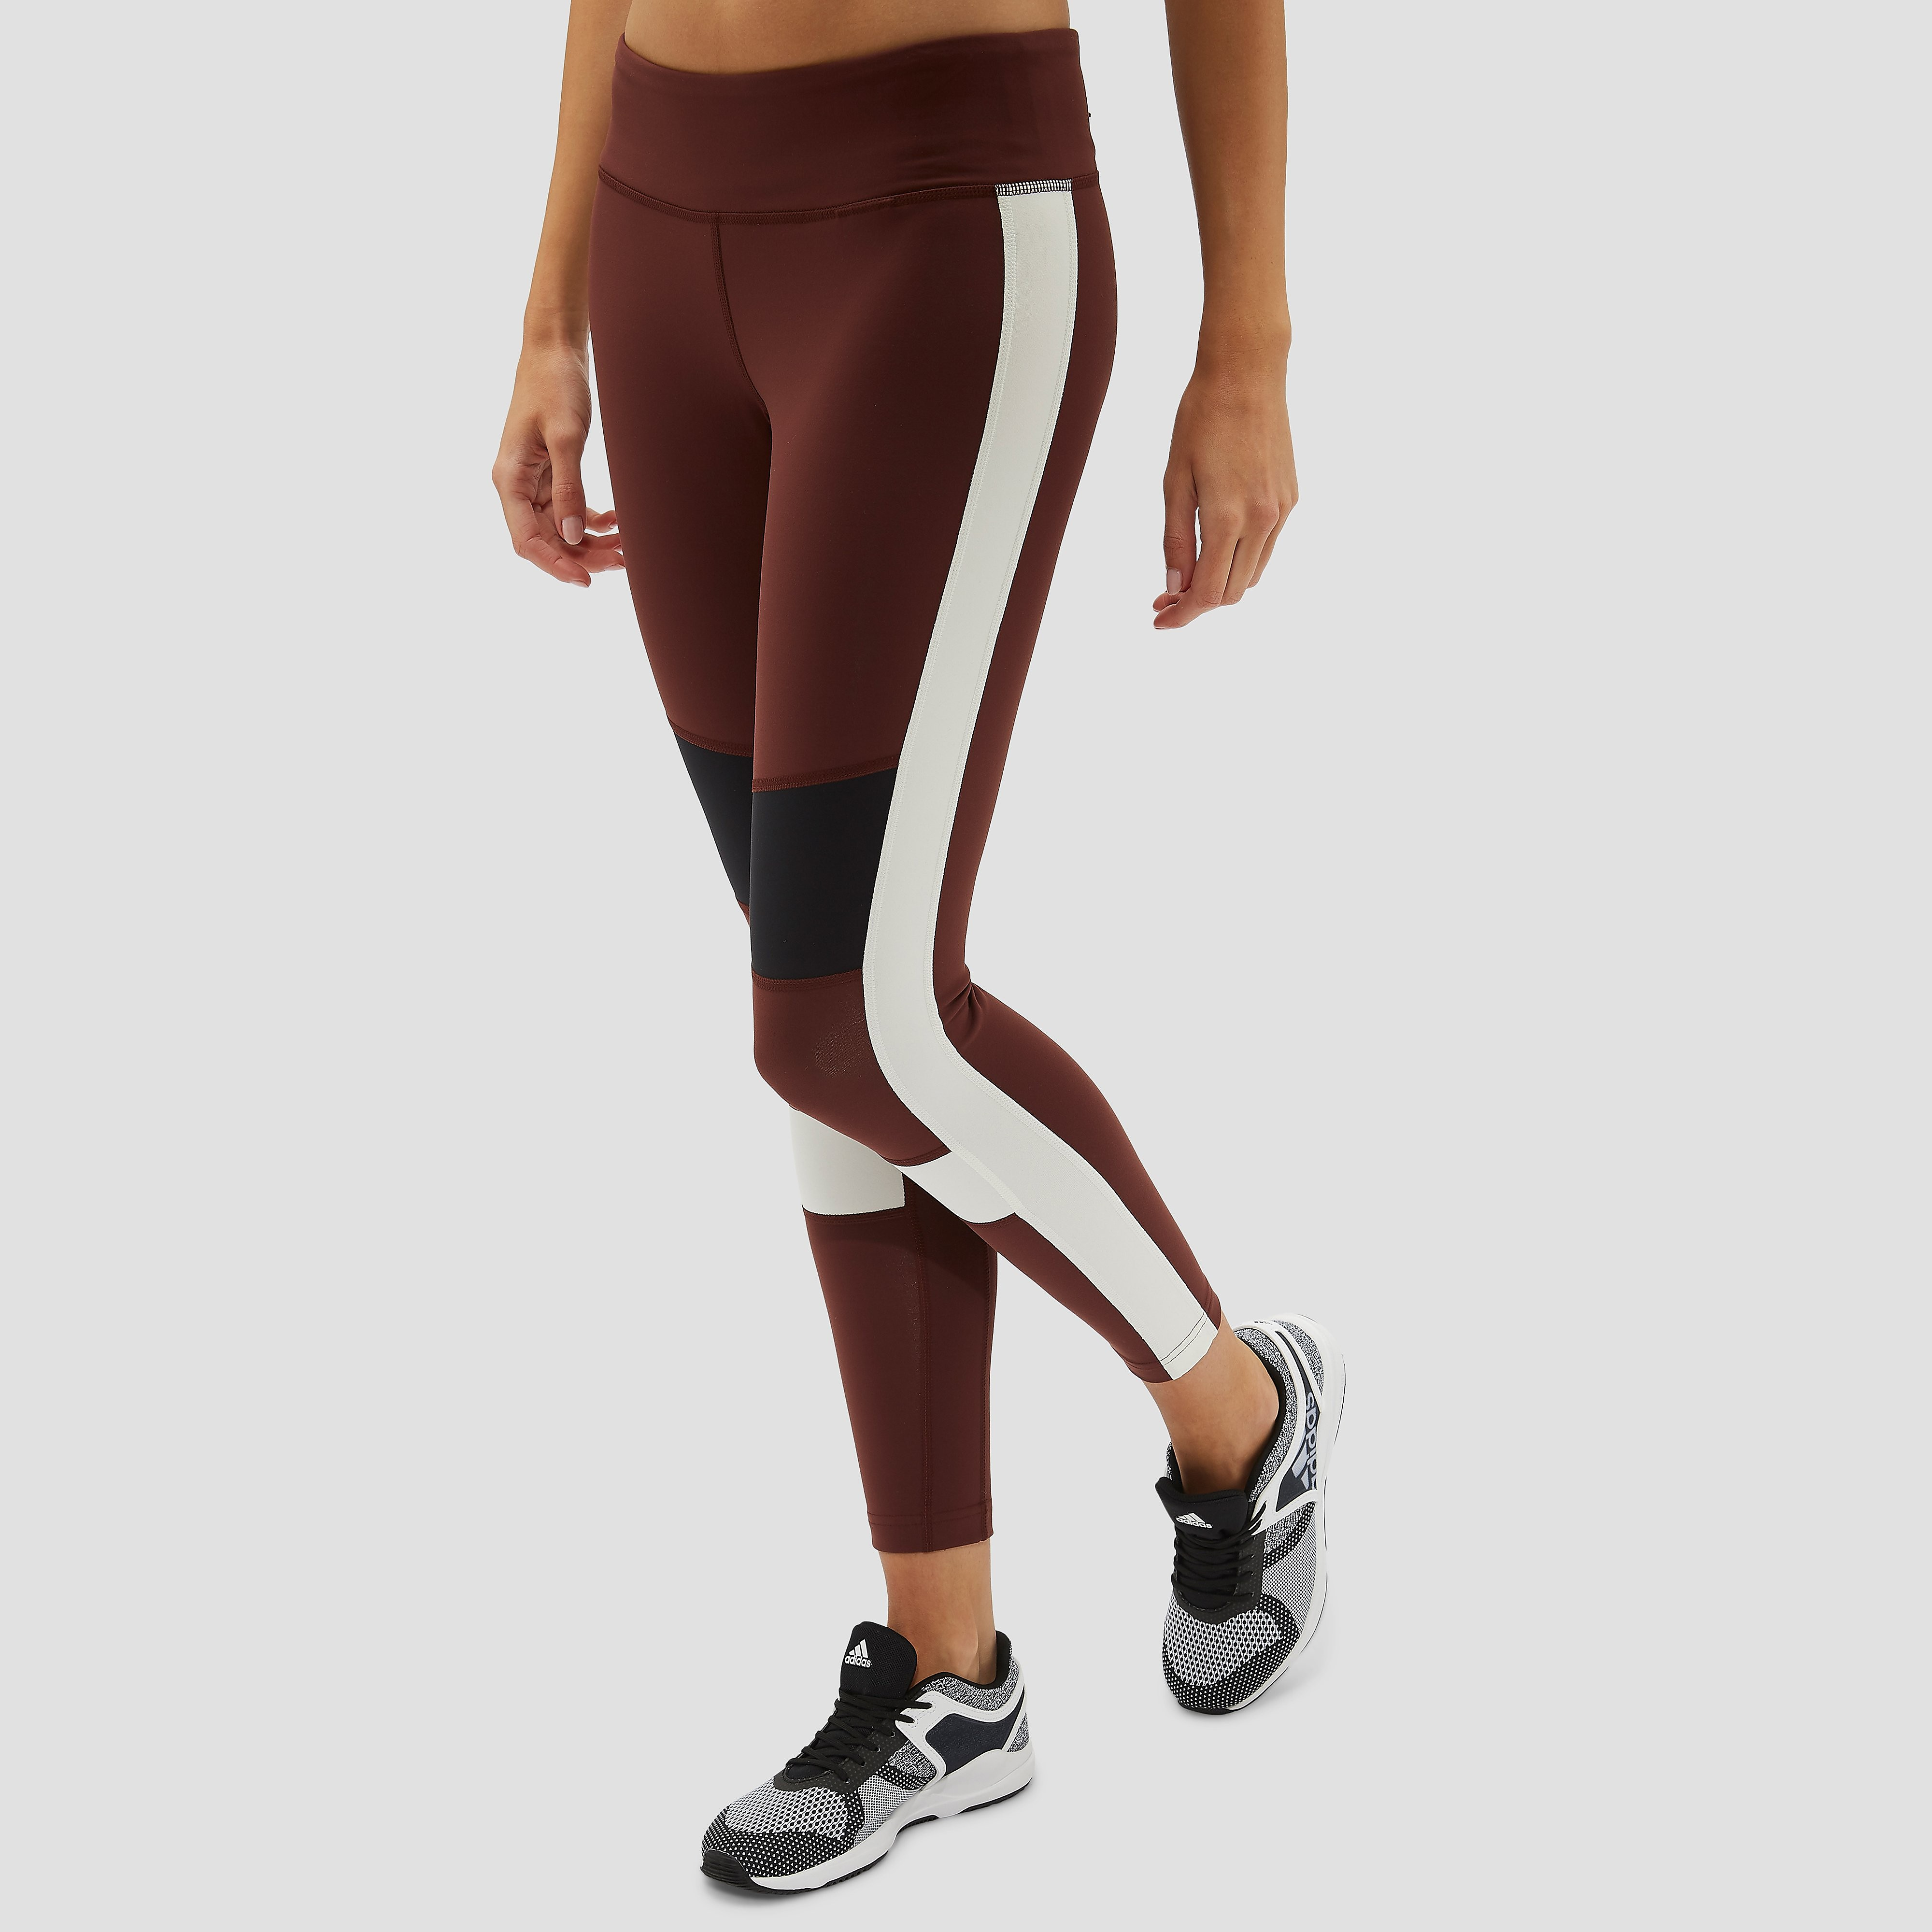 REEBOK LUX TIGHT COLOR TIGHT PAARS DAMES